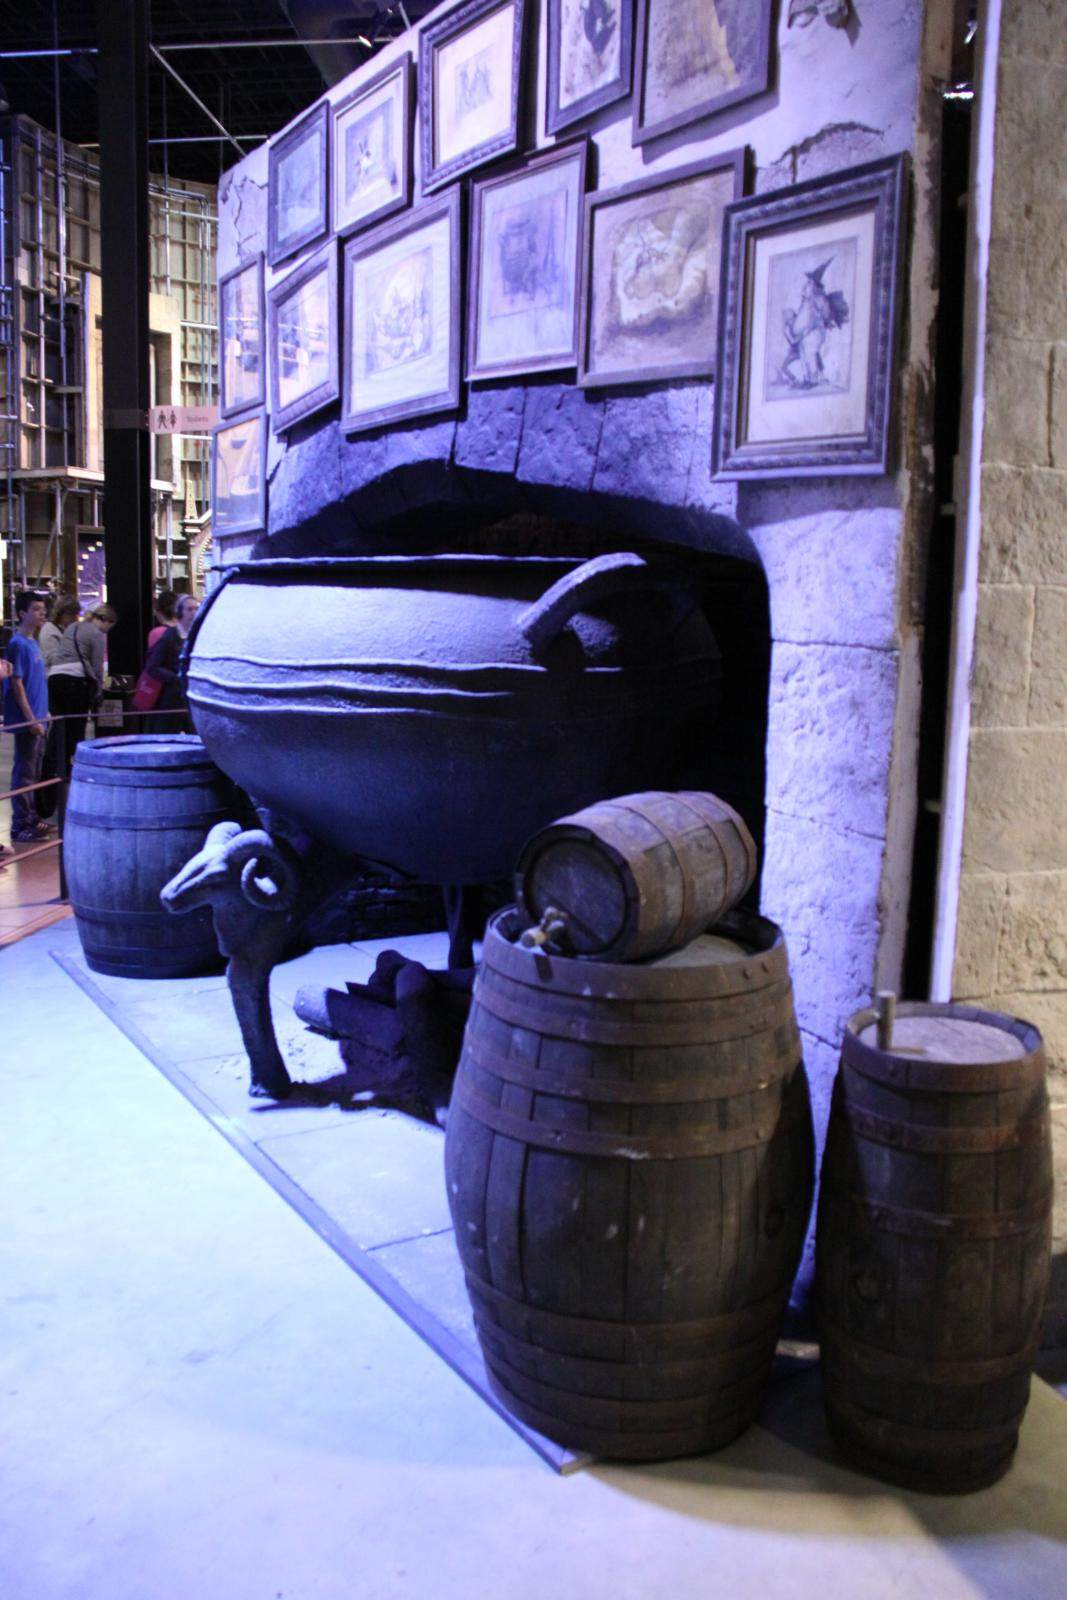 making harry potter12 The Making of Harry Potter, Warner Bros Studio London